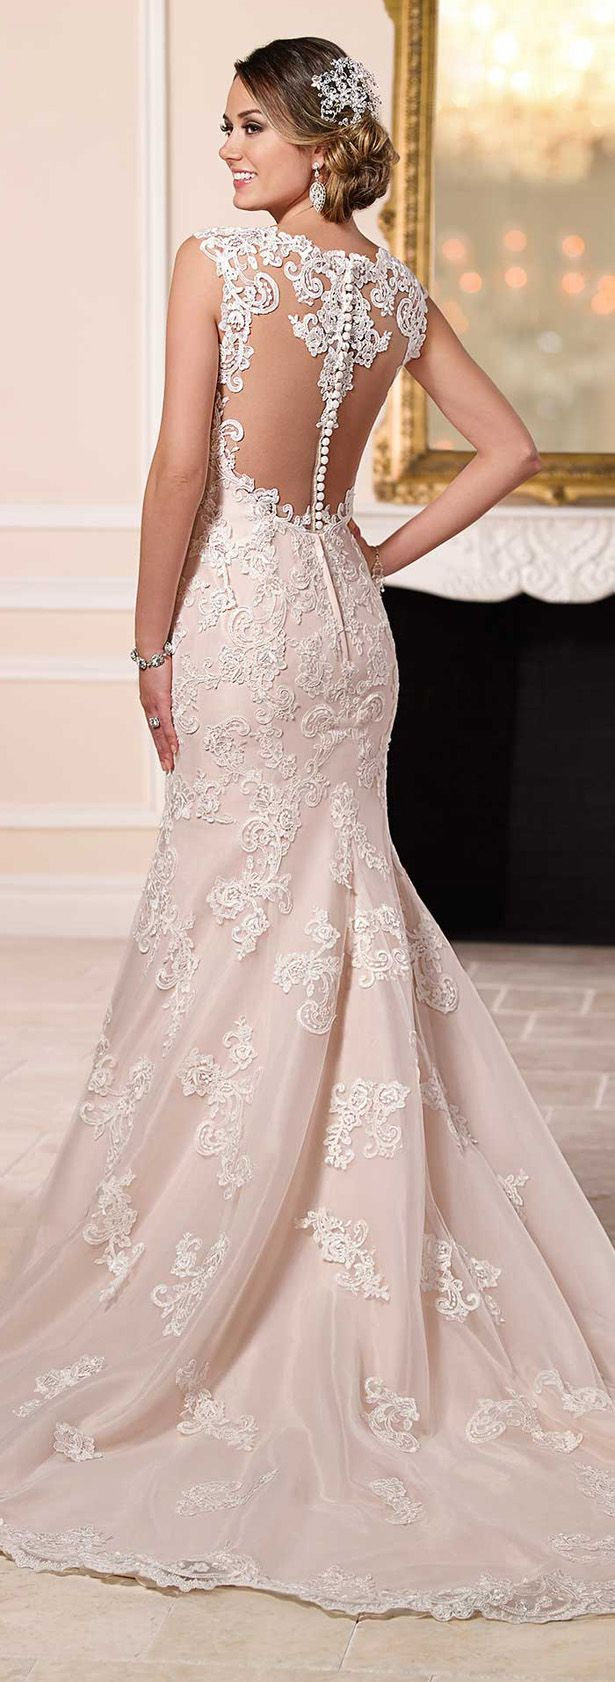 Different color wedding dresses   best Wedding images on Pinterest  Wedding ideas Weddings and